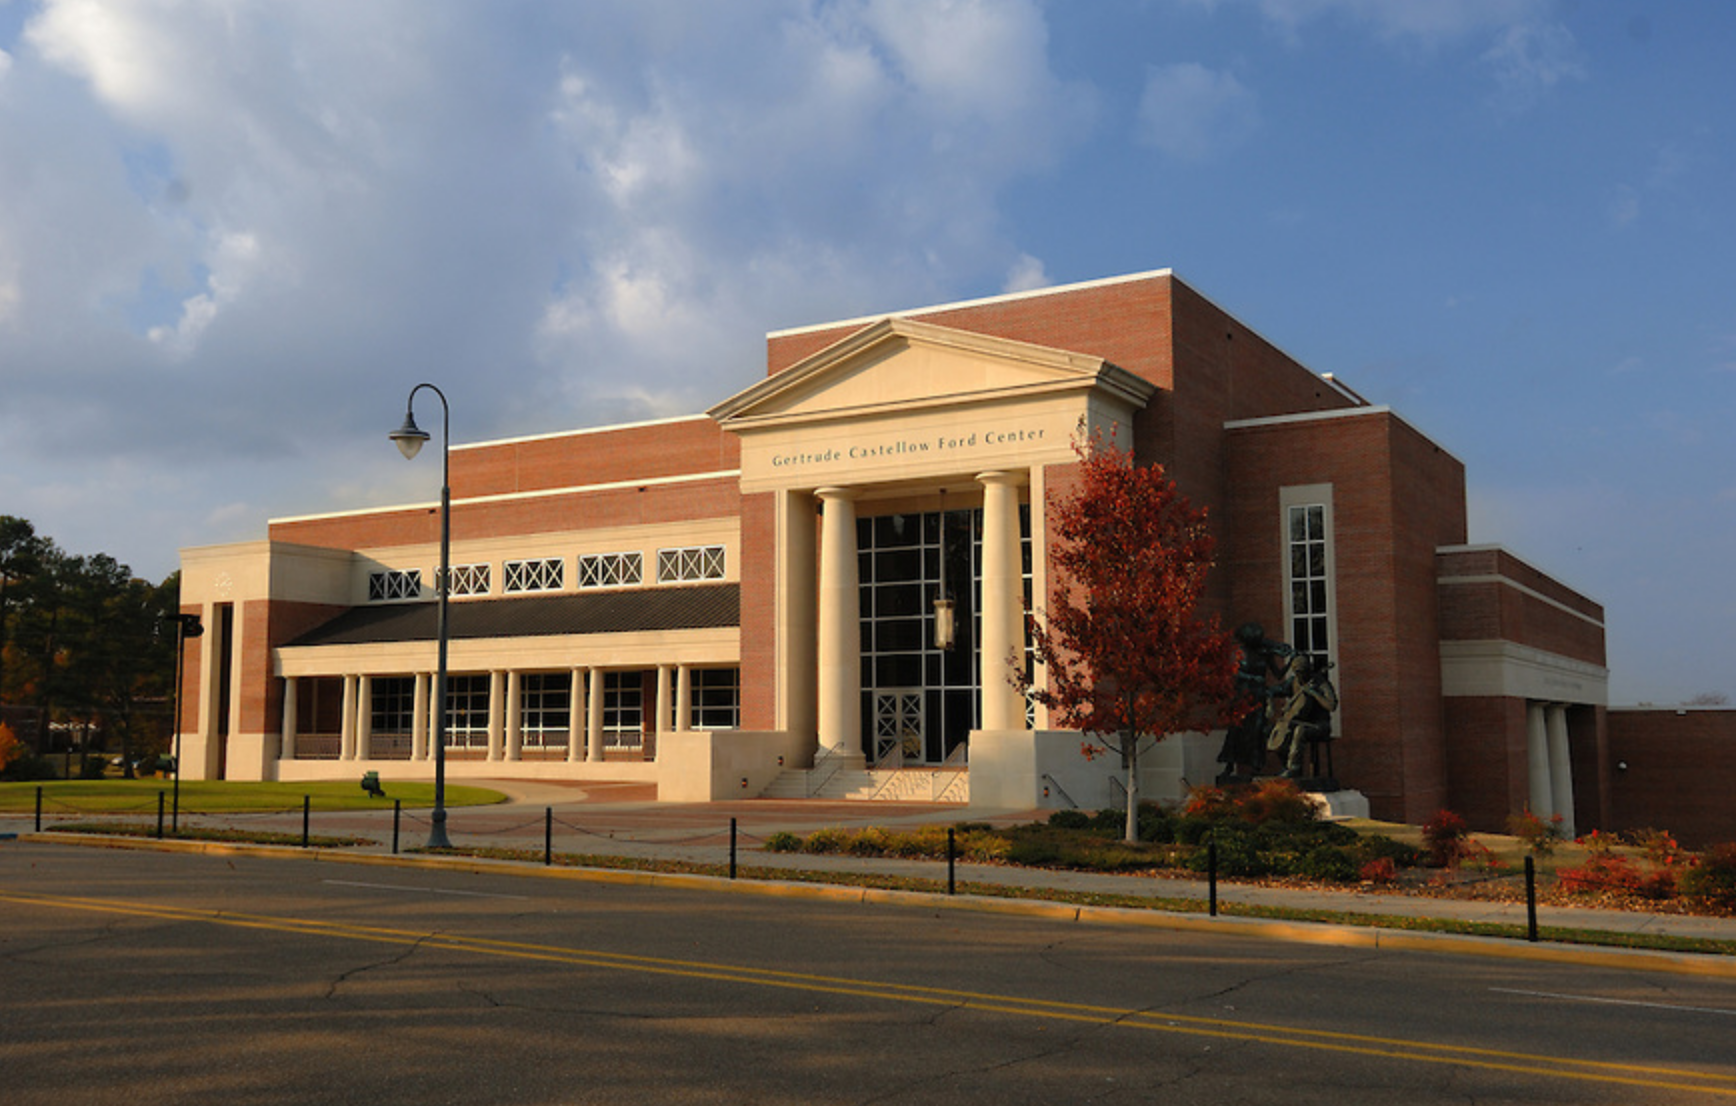 The Ford Center